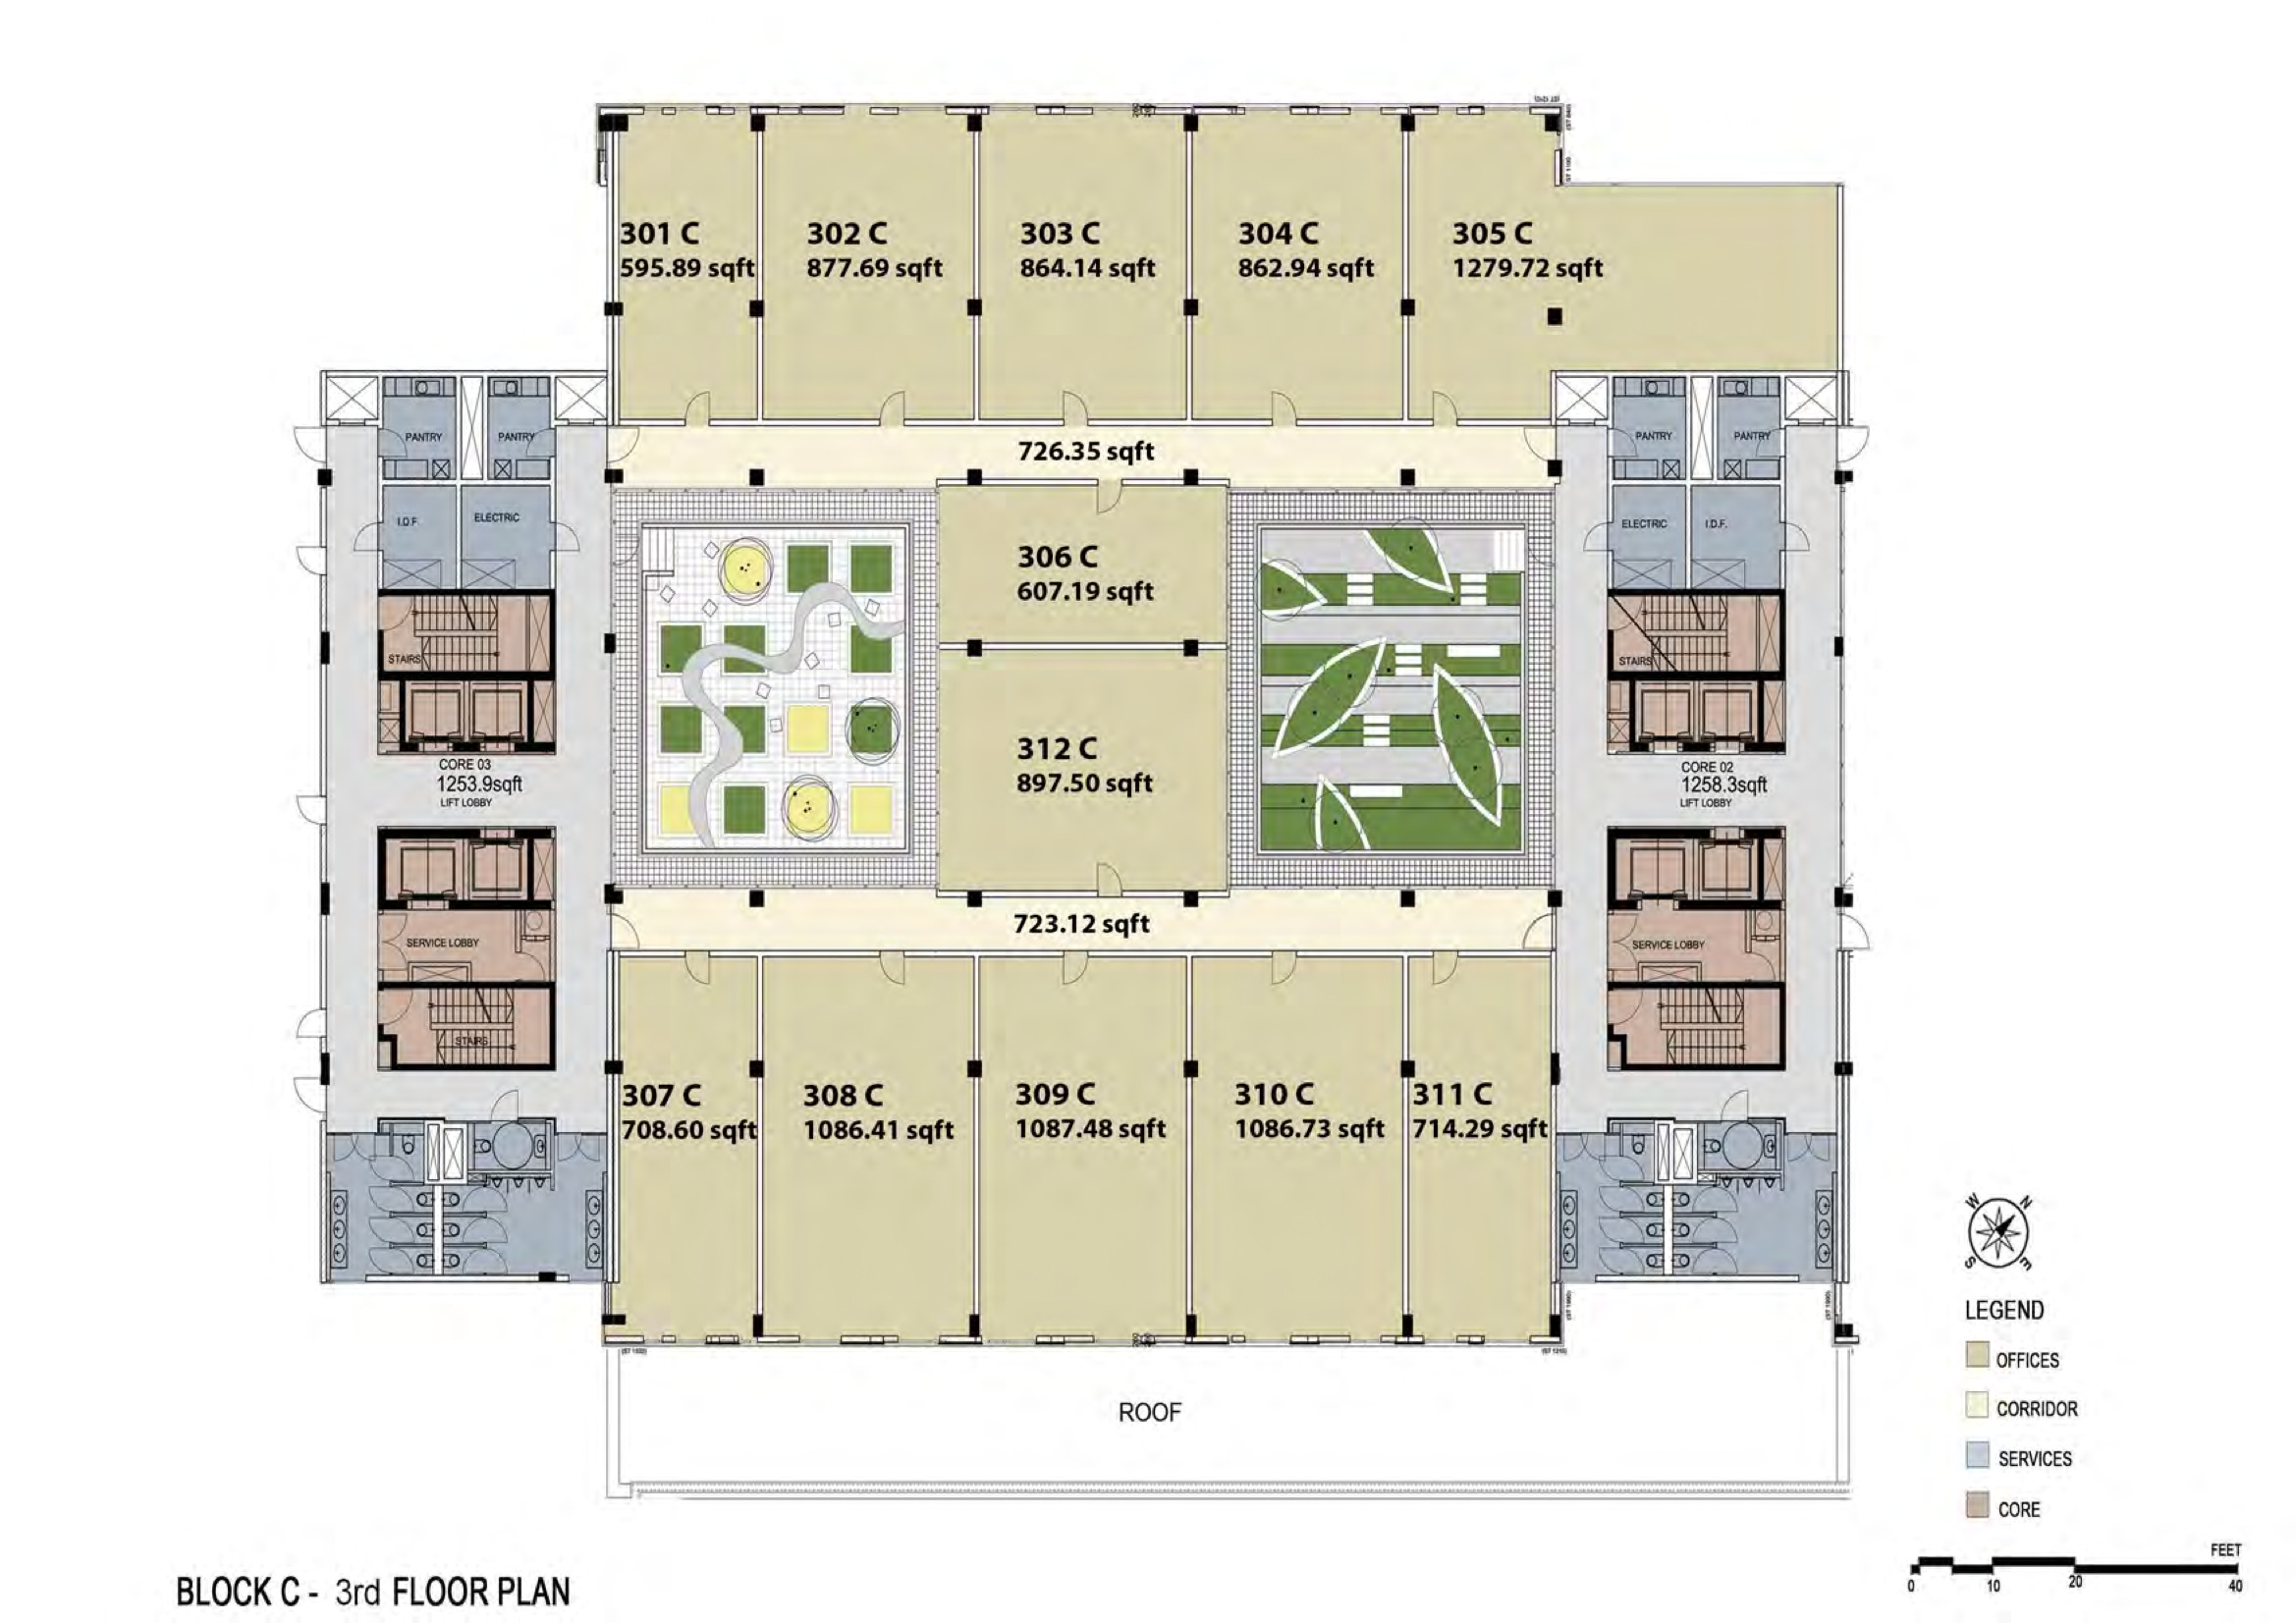 Office park floor plans media city dubai Program for floor plans